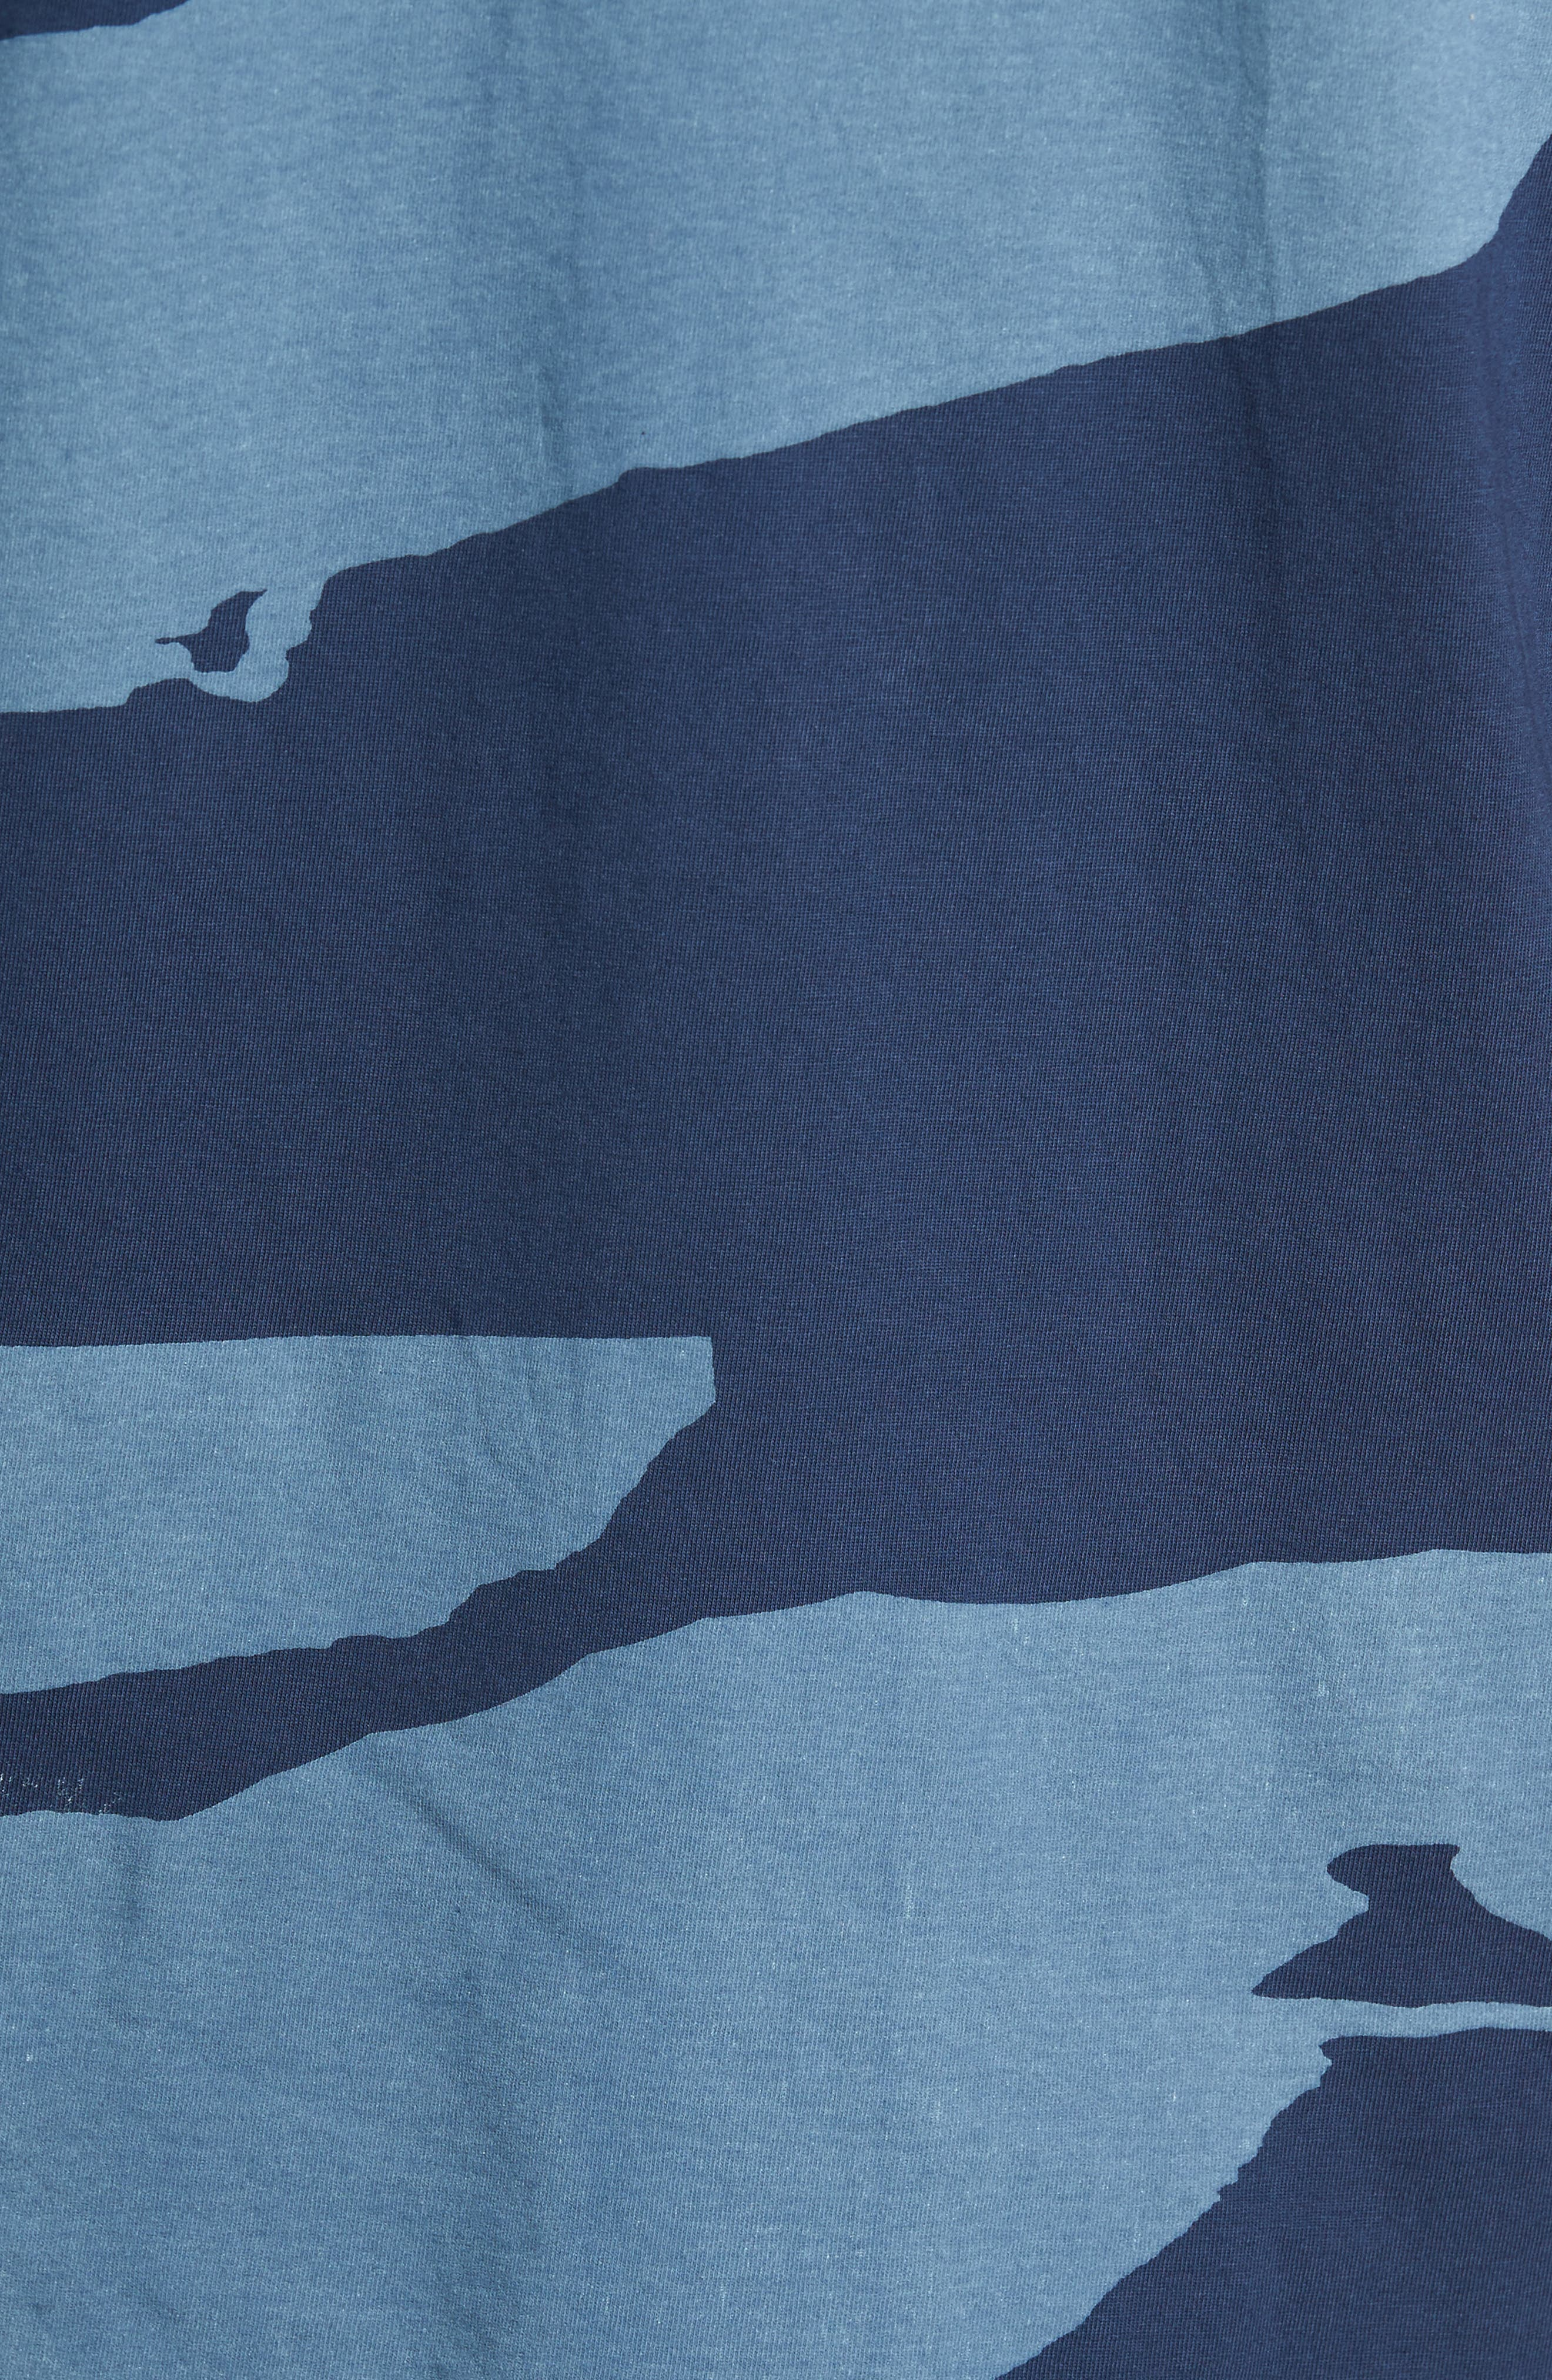 Torn Stripes T-Shirt,                             Alternate thumbnail 5, color,                             Navy